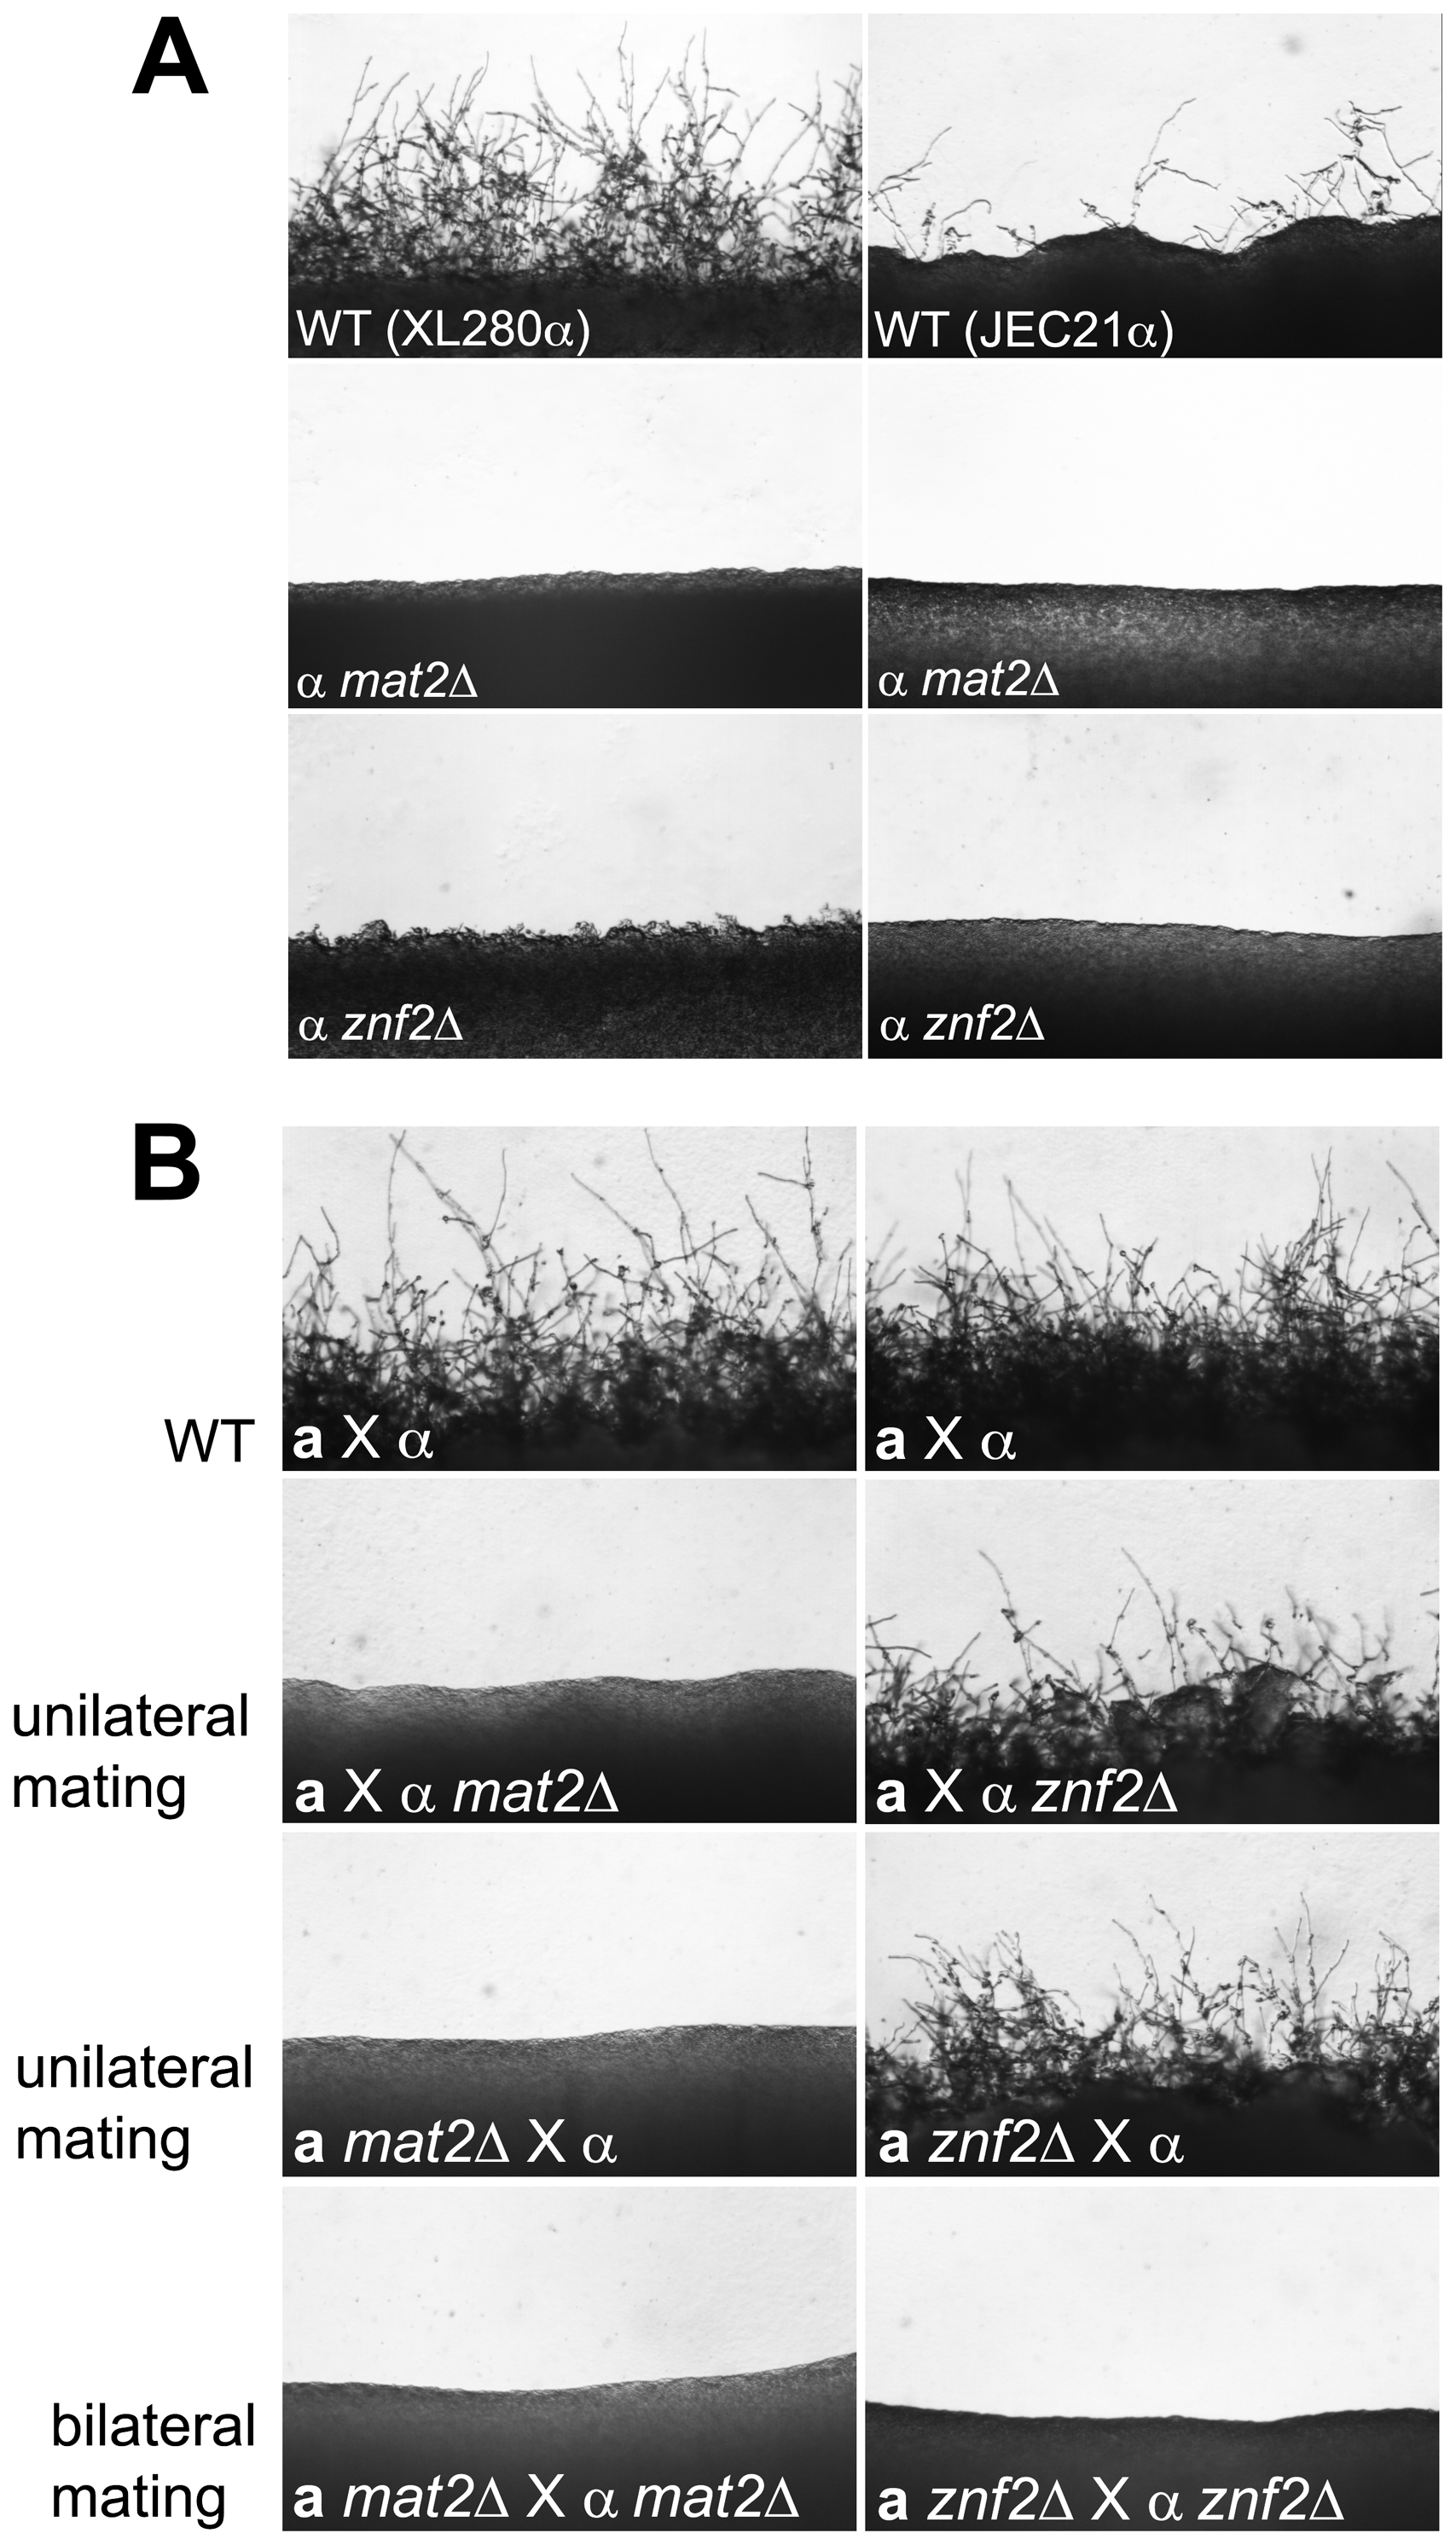 Deletion of either the <i>MAT2</i> or the <i>ZNF2</i> gene impairs filamentation during a-α and α-α mating.